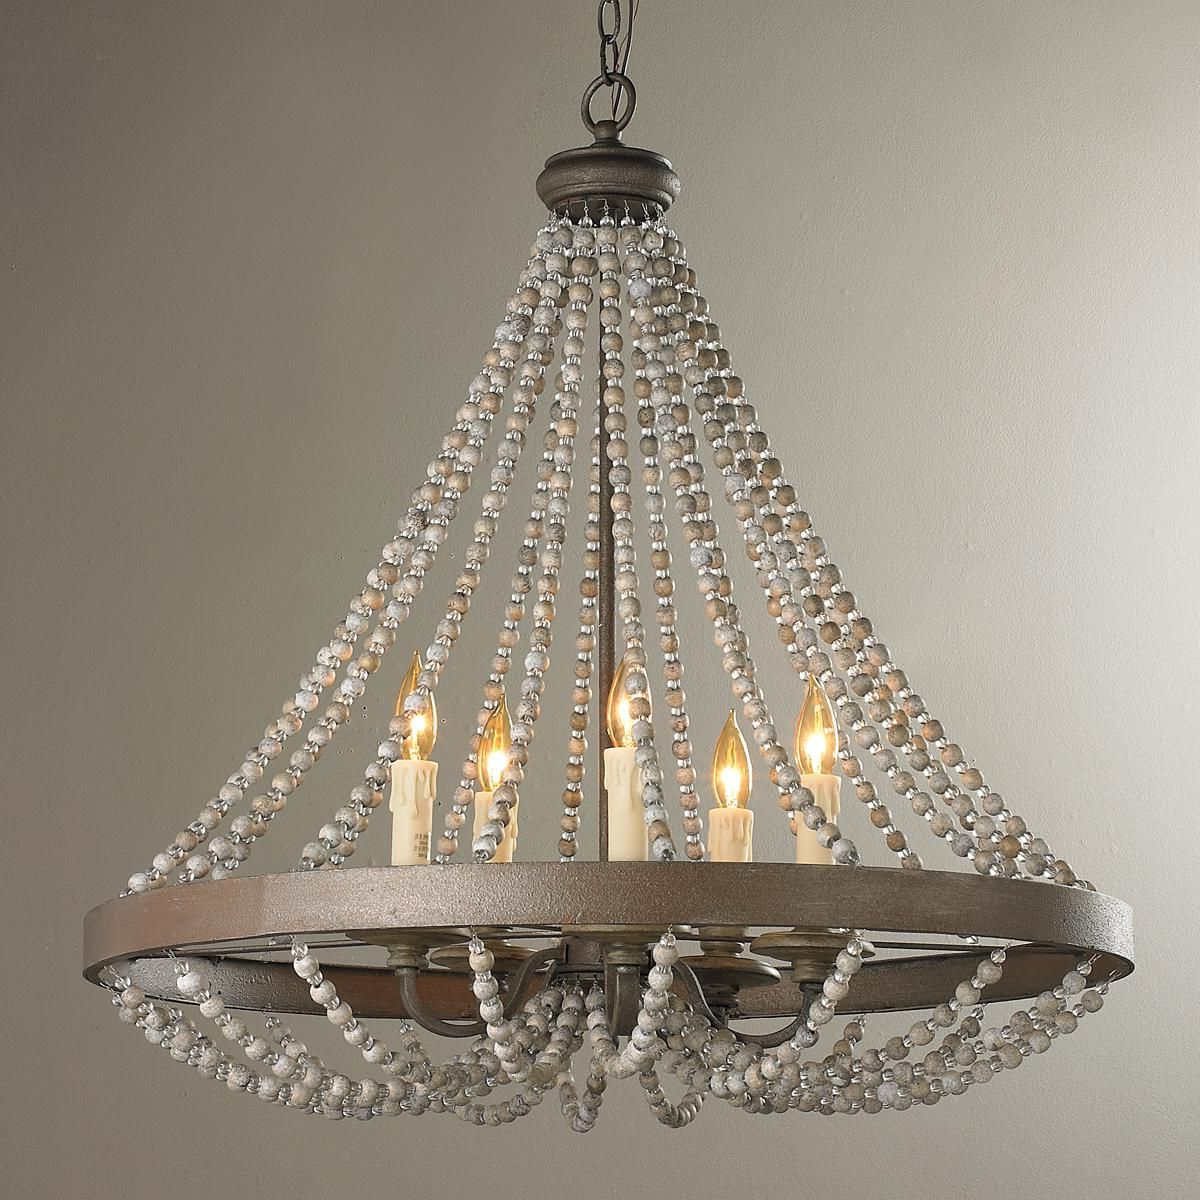 Rustic Designs In Intended For Favorite Ladonna 5 Light Novelty Chandeliers (View 14 of 20)